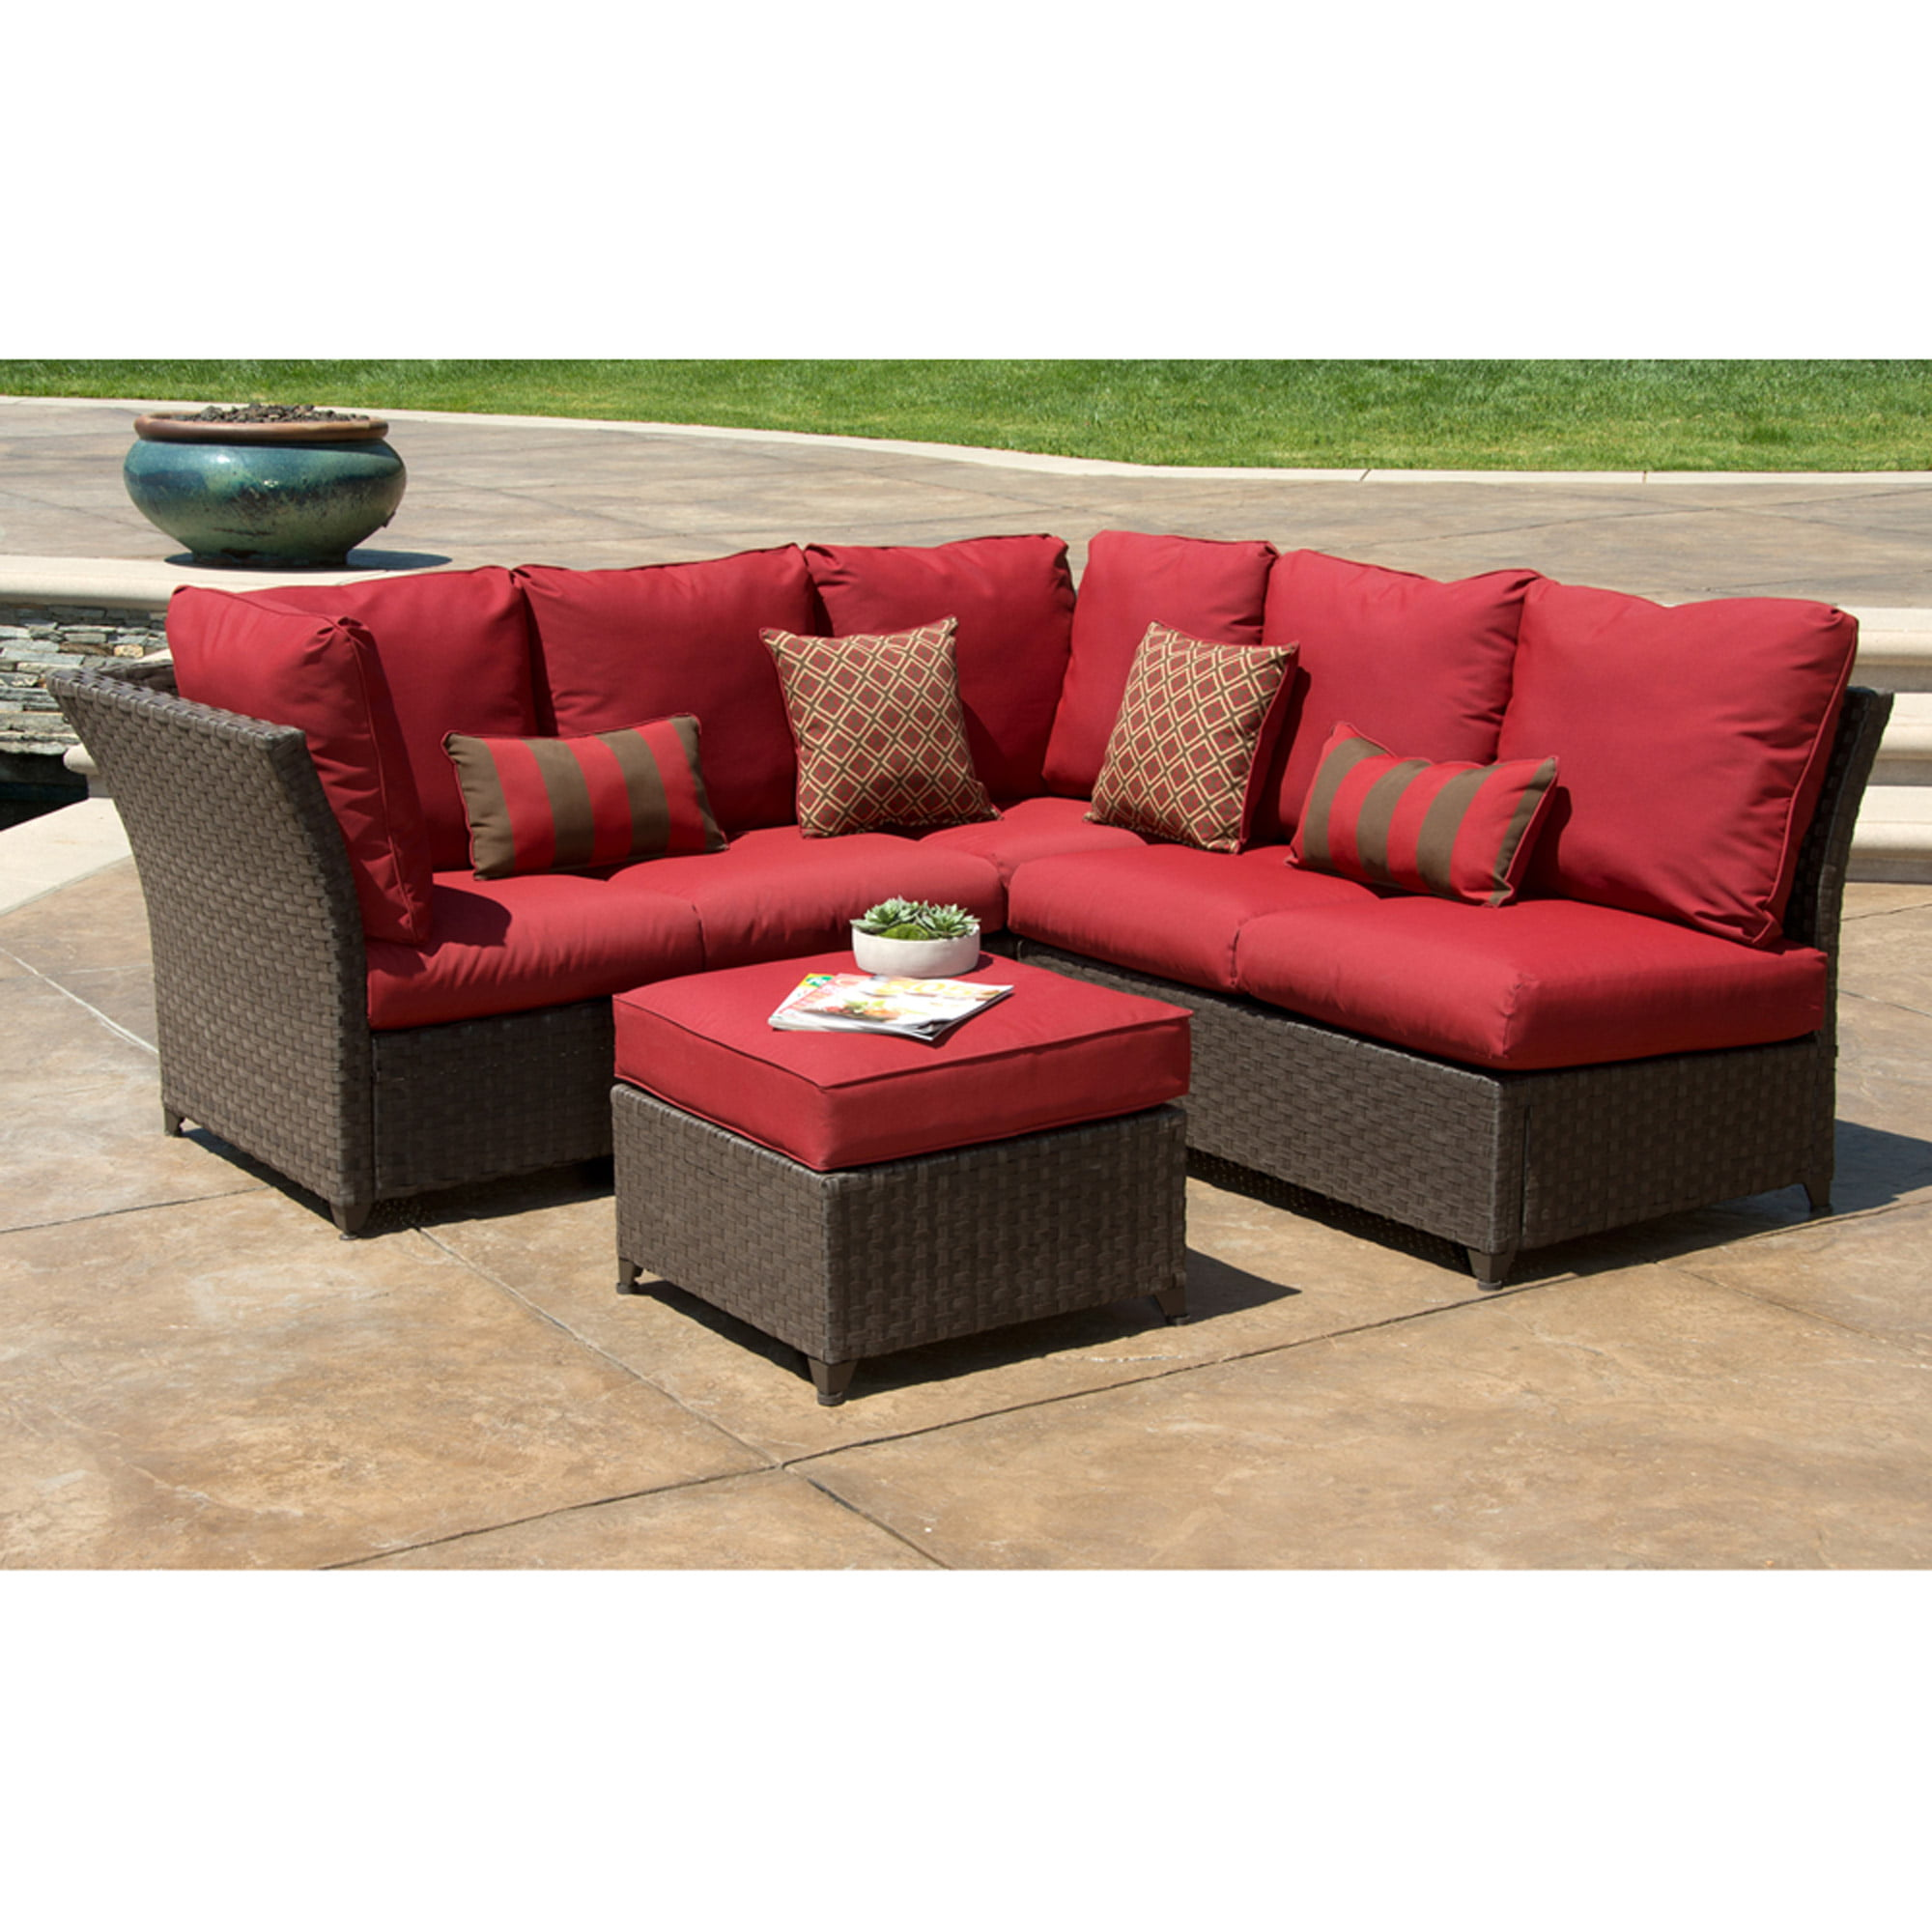 Better Homes And Gardens Rushreed 3 Piece Outdoor Sectional Sofa Set Red Seats 5